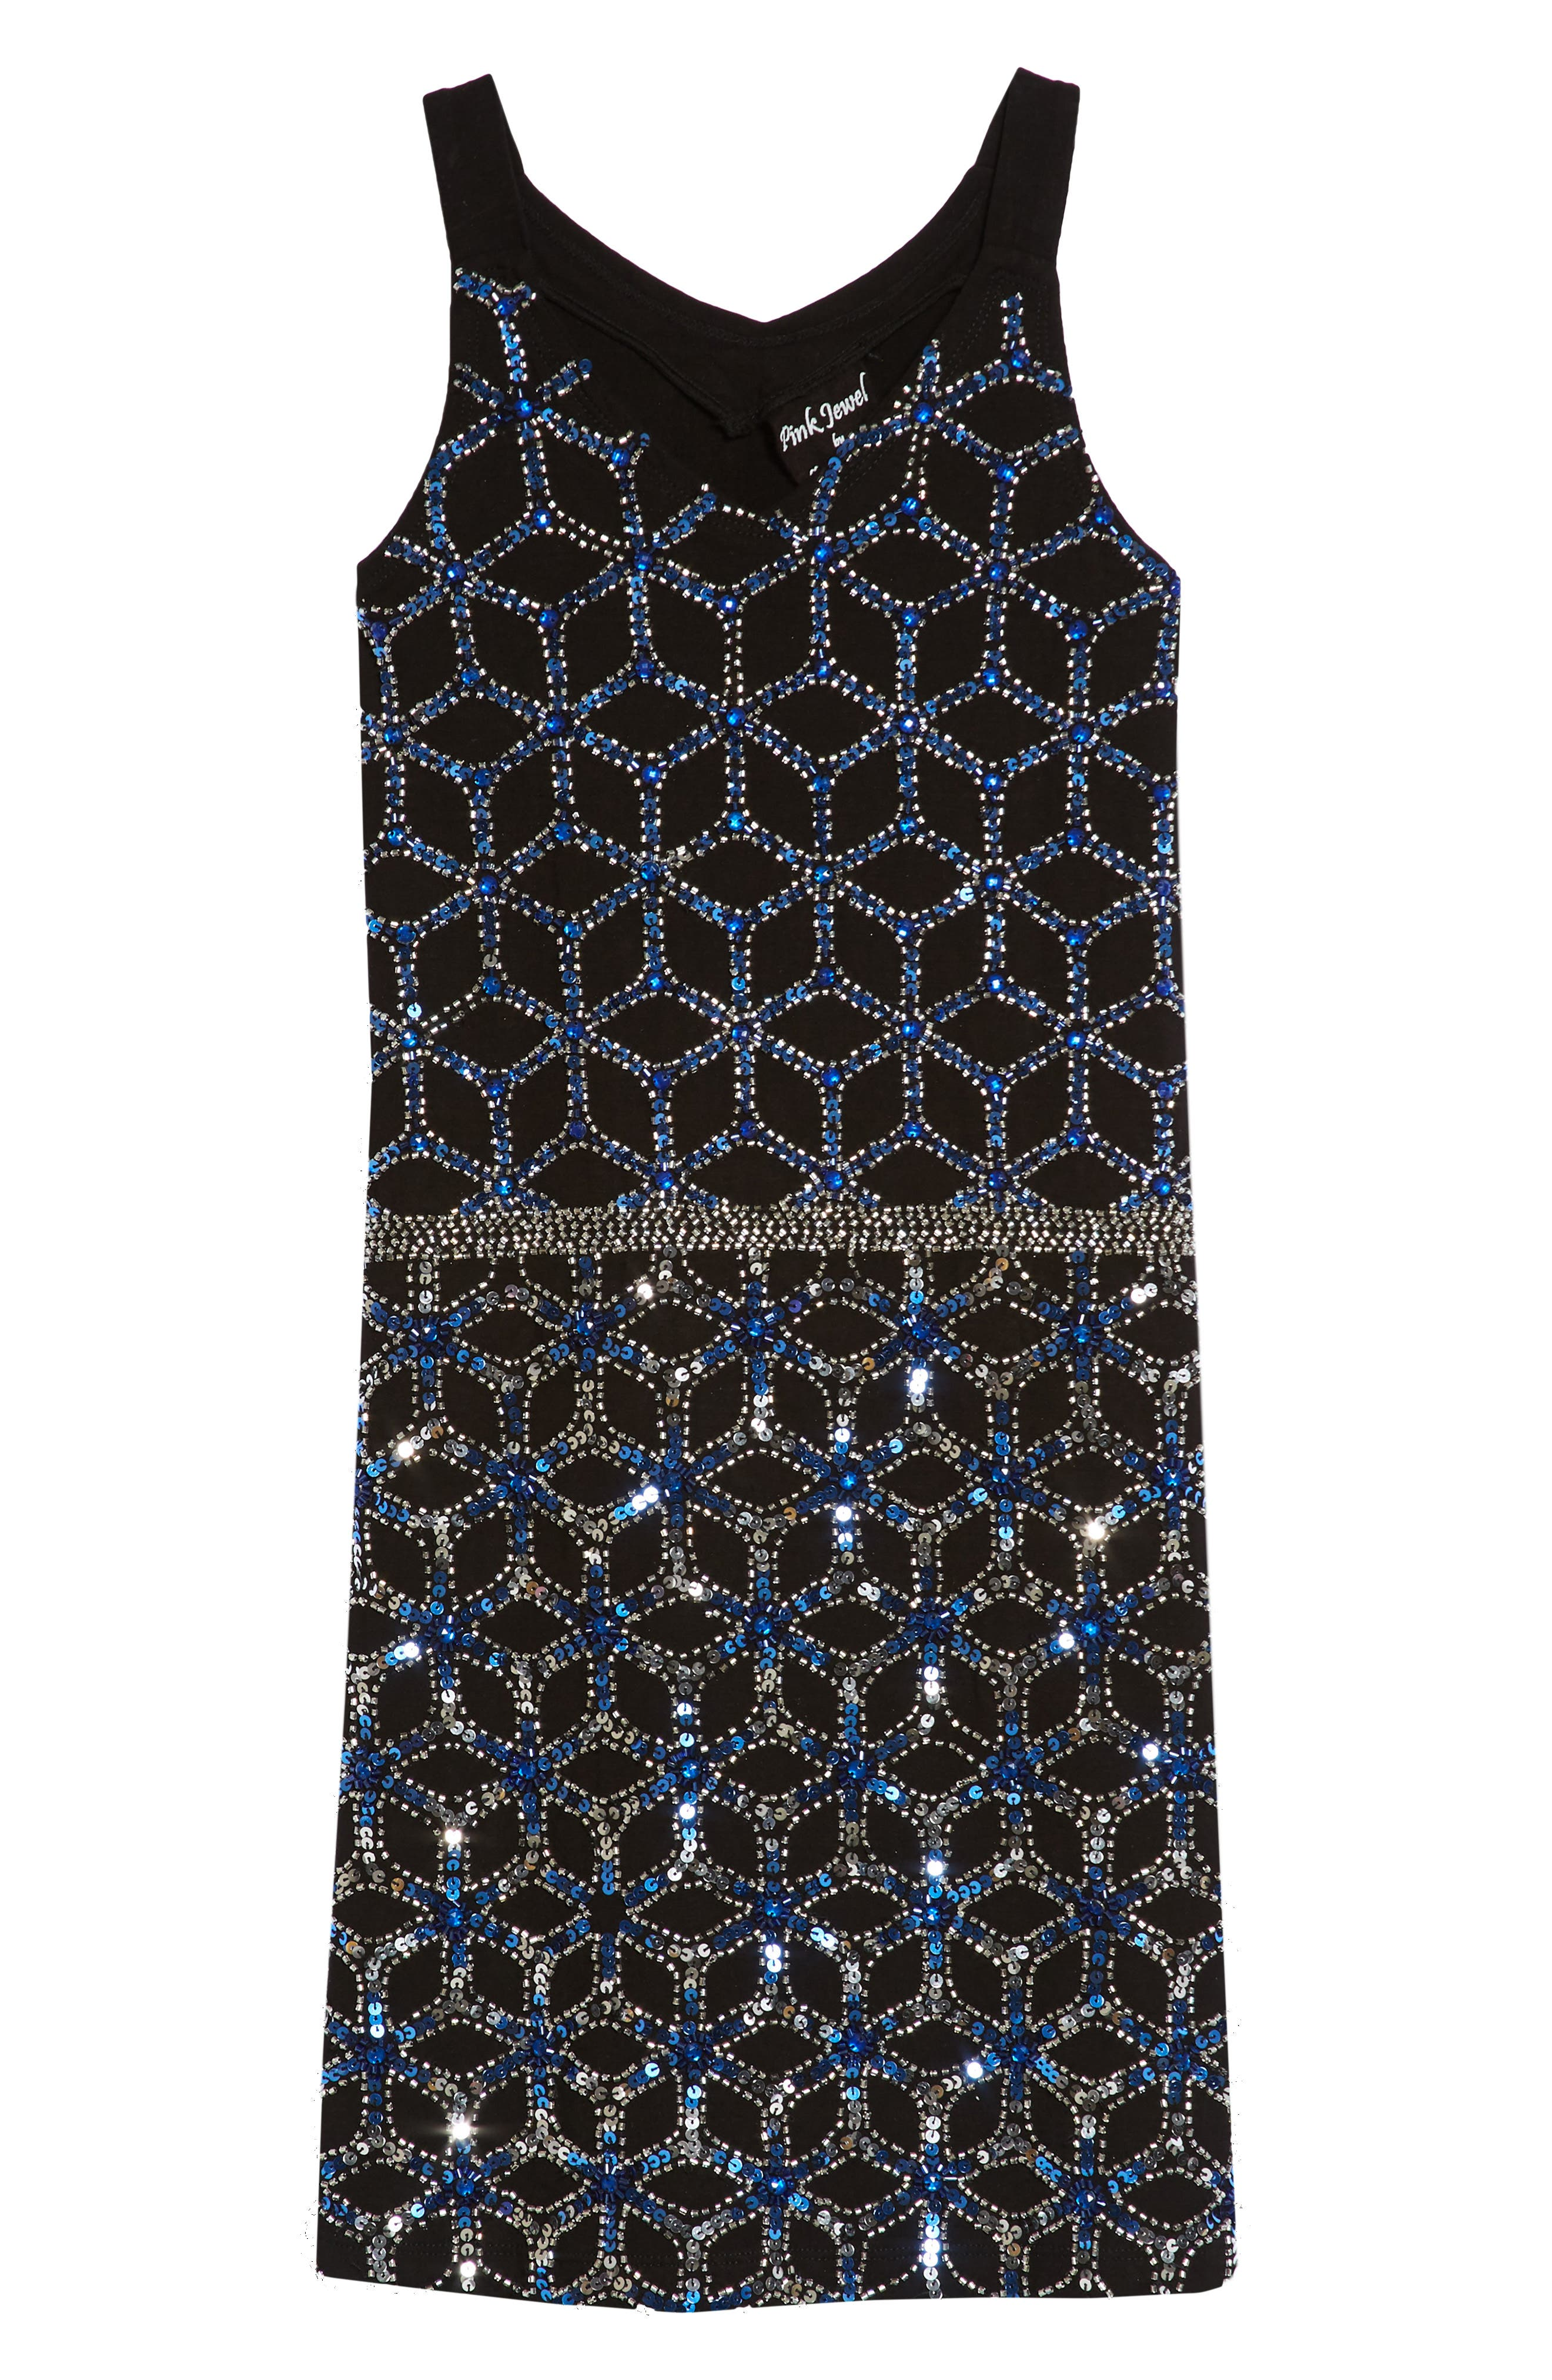 Sequined & Beaded Tank Dress,                         Main,                         color, Black/ Blue